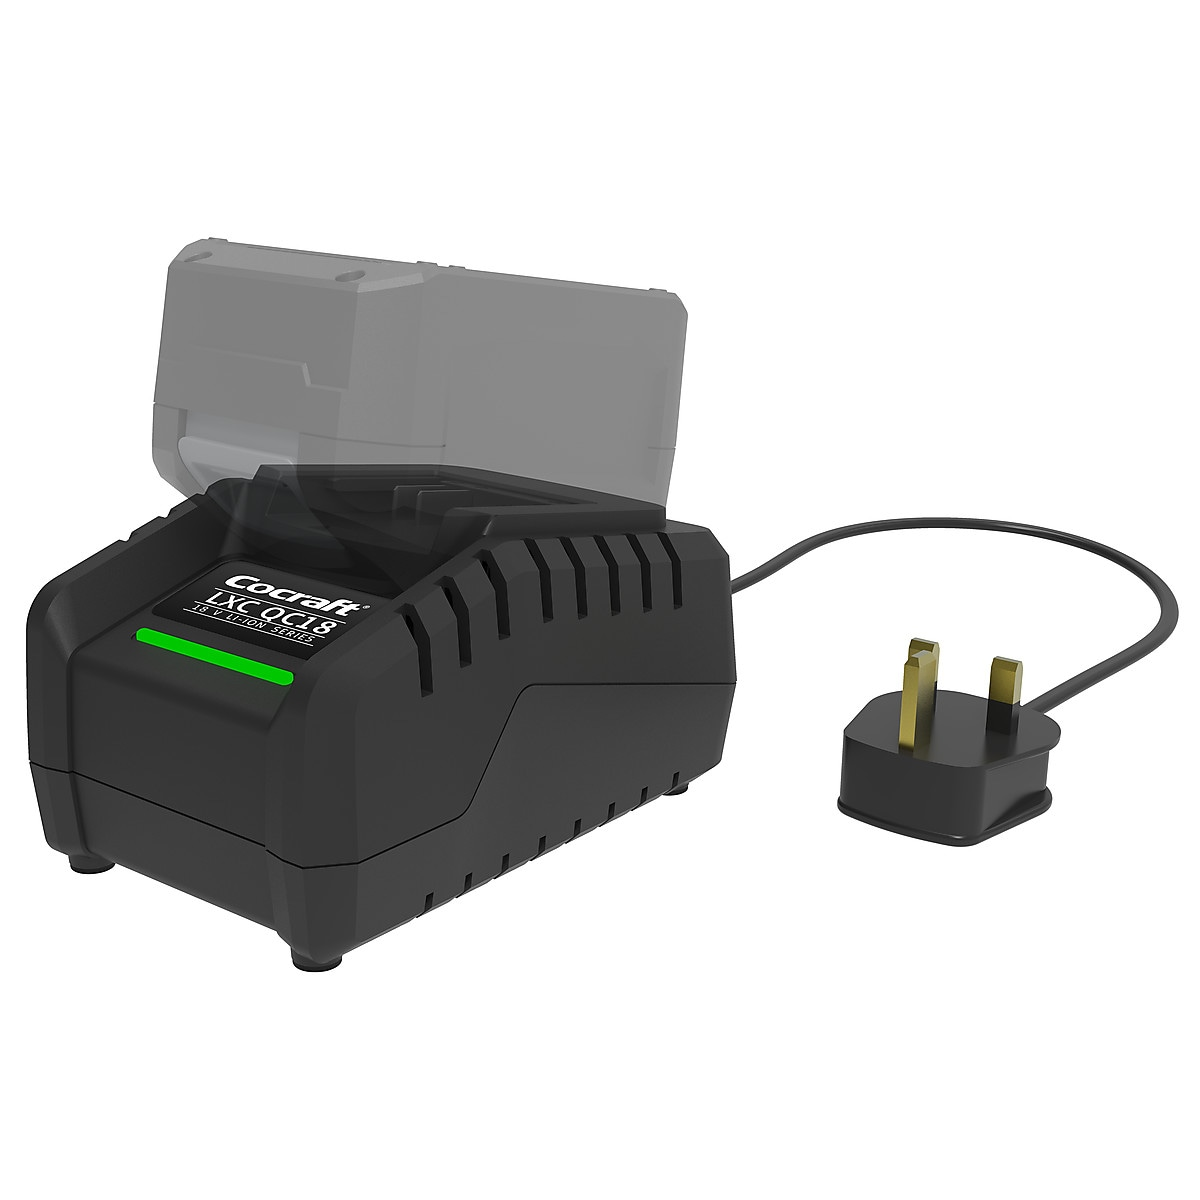 Cocraft LXC QC18 Battery Charger